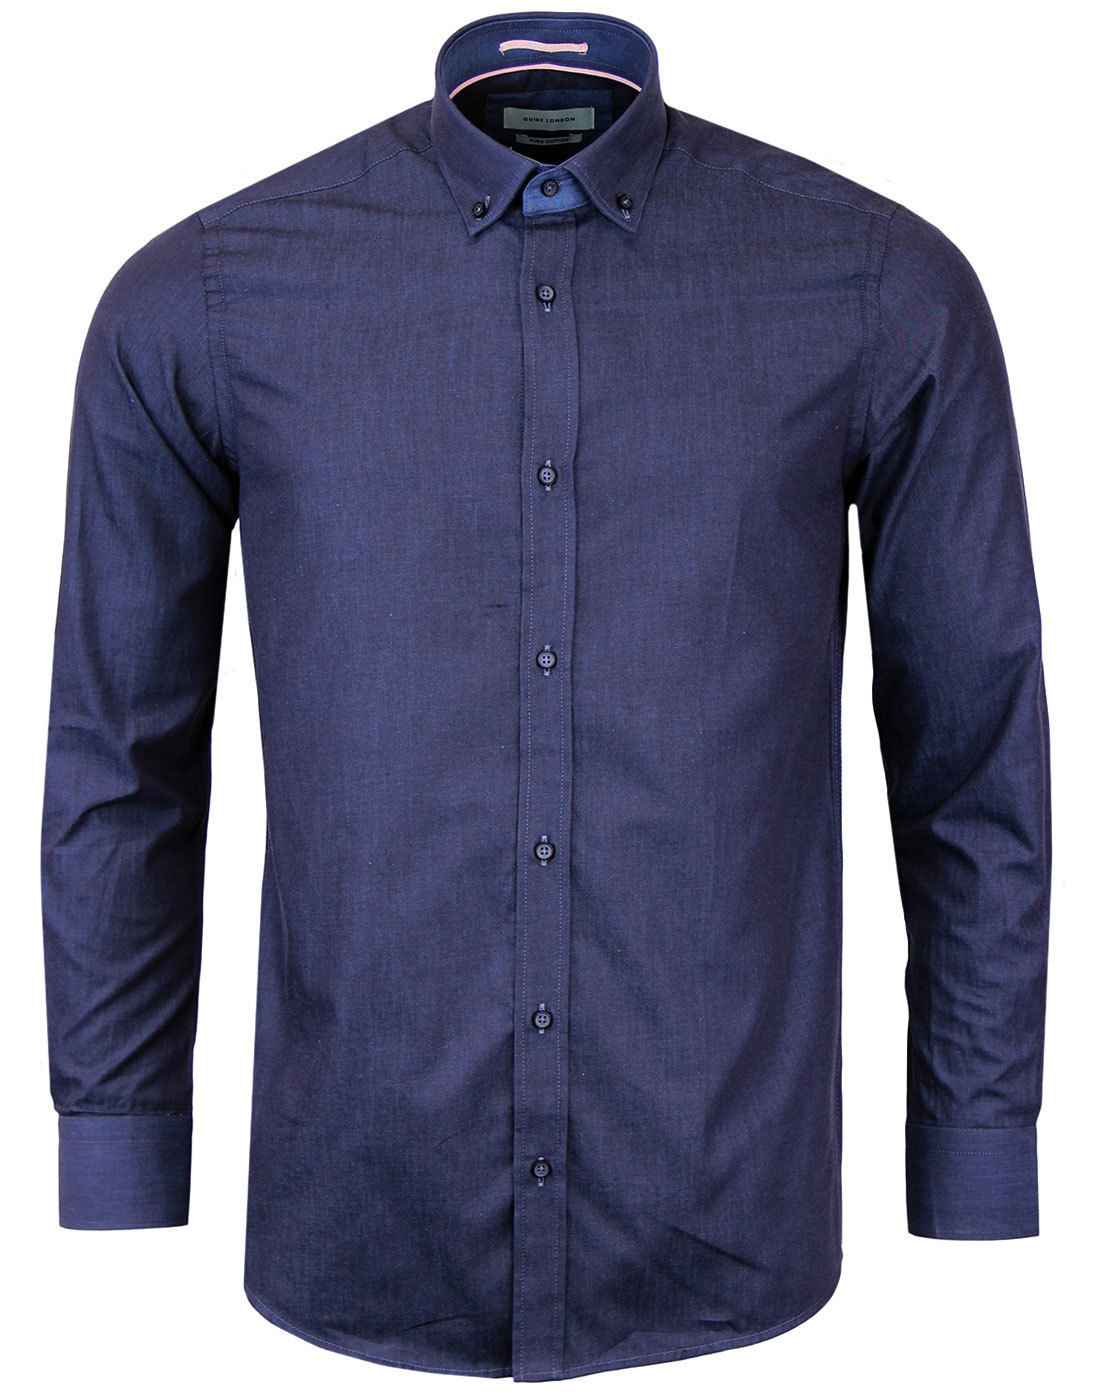 GUIDE LONDON Retro Mod Tonic Button Down Shirt